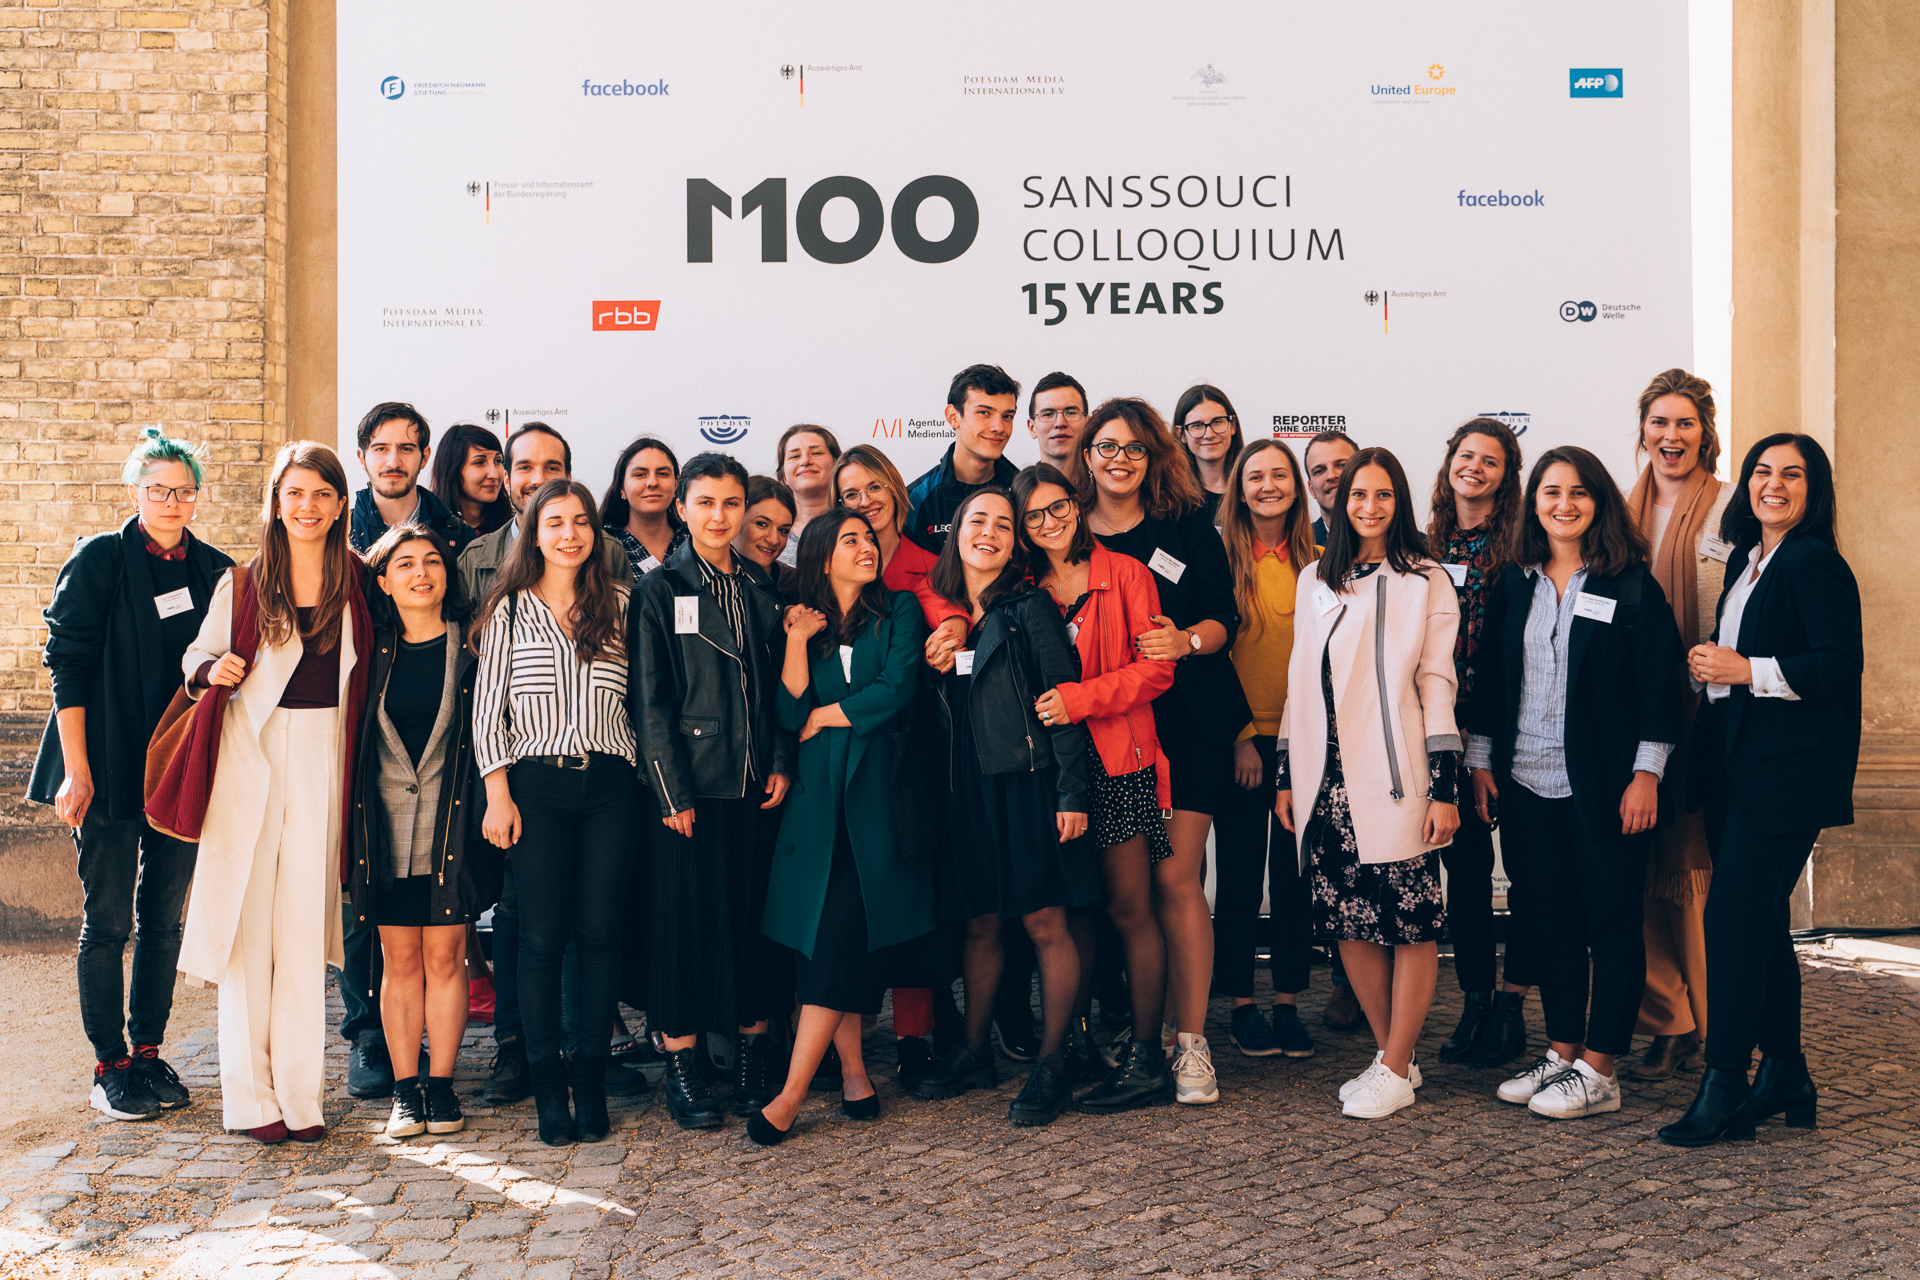 Group photo during the M100 Young European Journalists Workshop 2019 at the M100 Sanssouci Colloquium